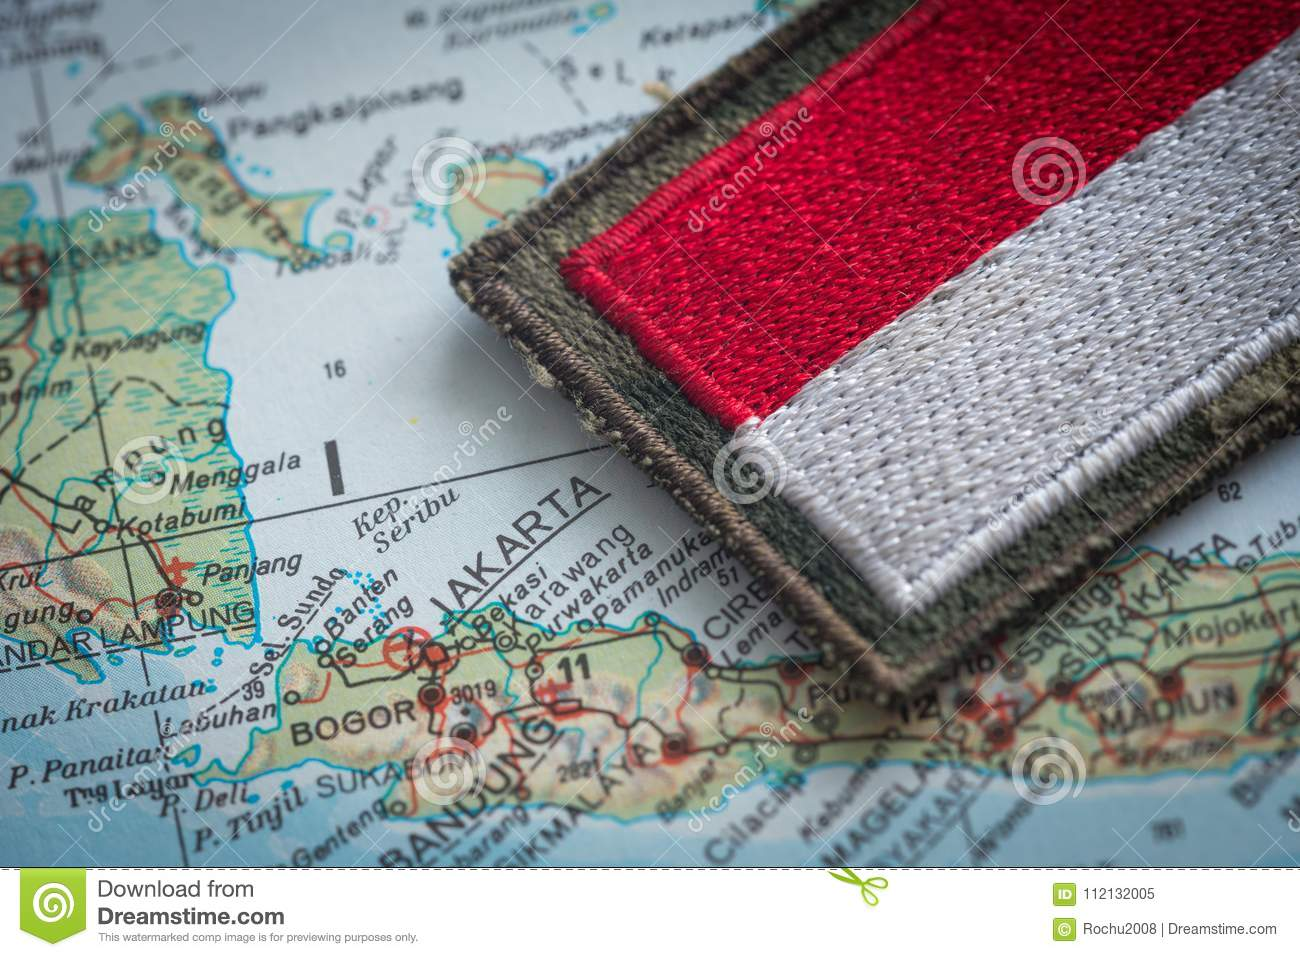 Indonesian flag on the background of the indonesia map